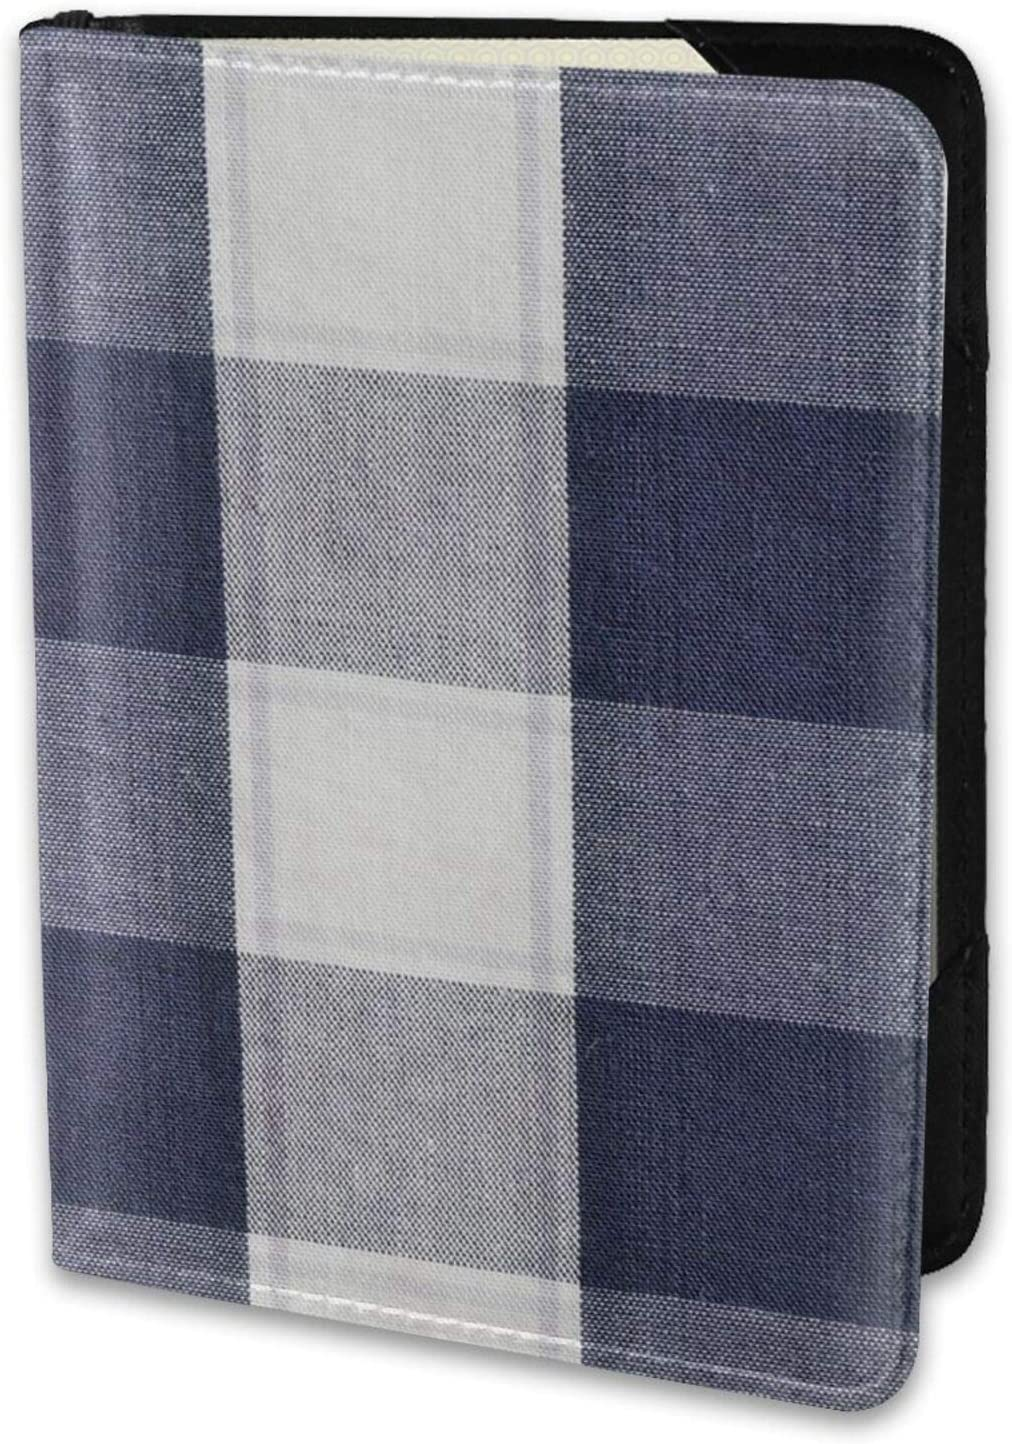 Passport Cover Unusual Blue White And Grey Square Plaid Womens Mens Leather Passport Holder Case Protector Travel